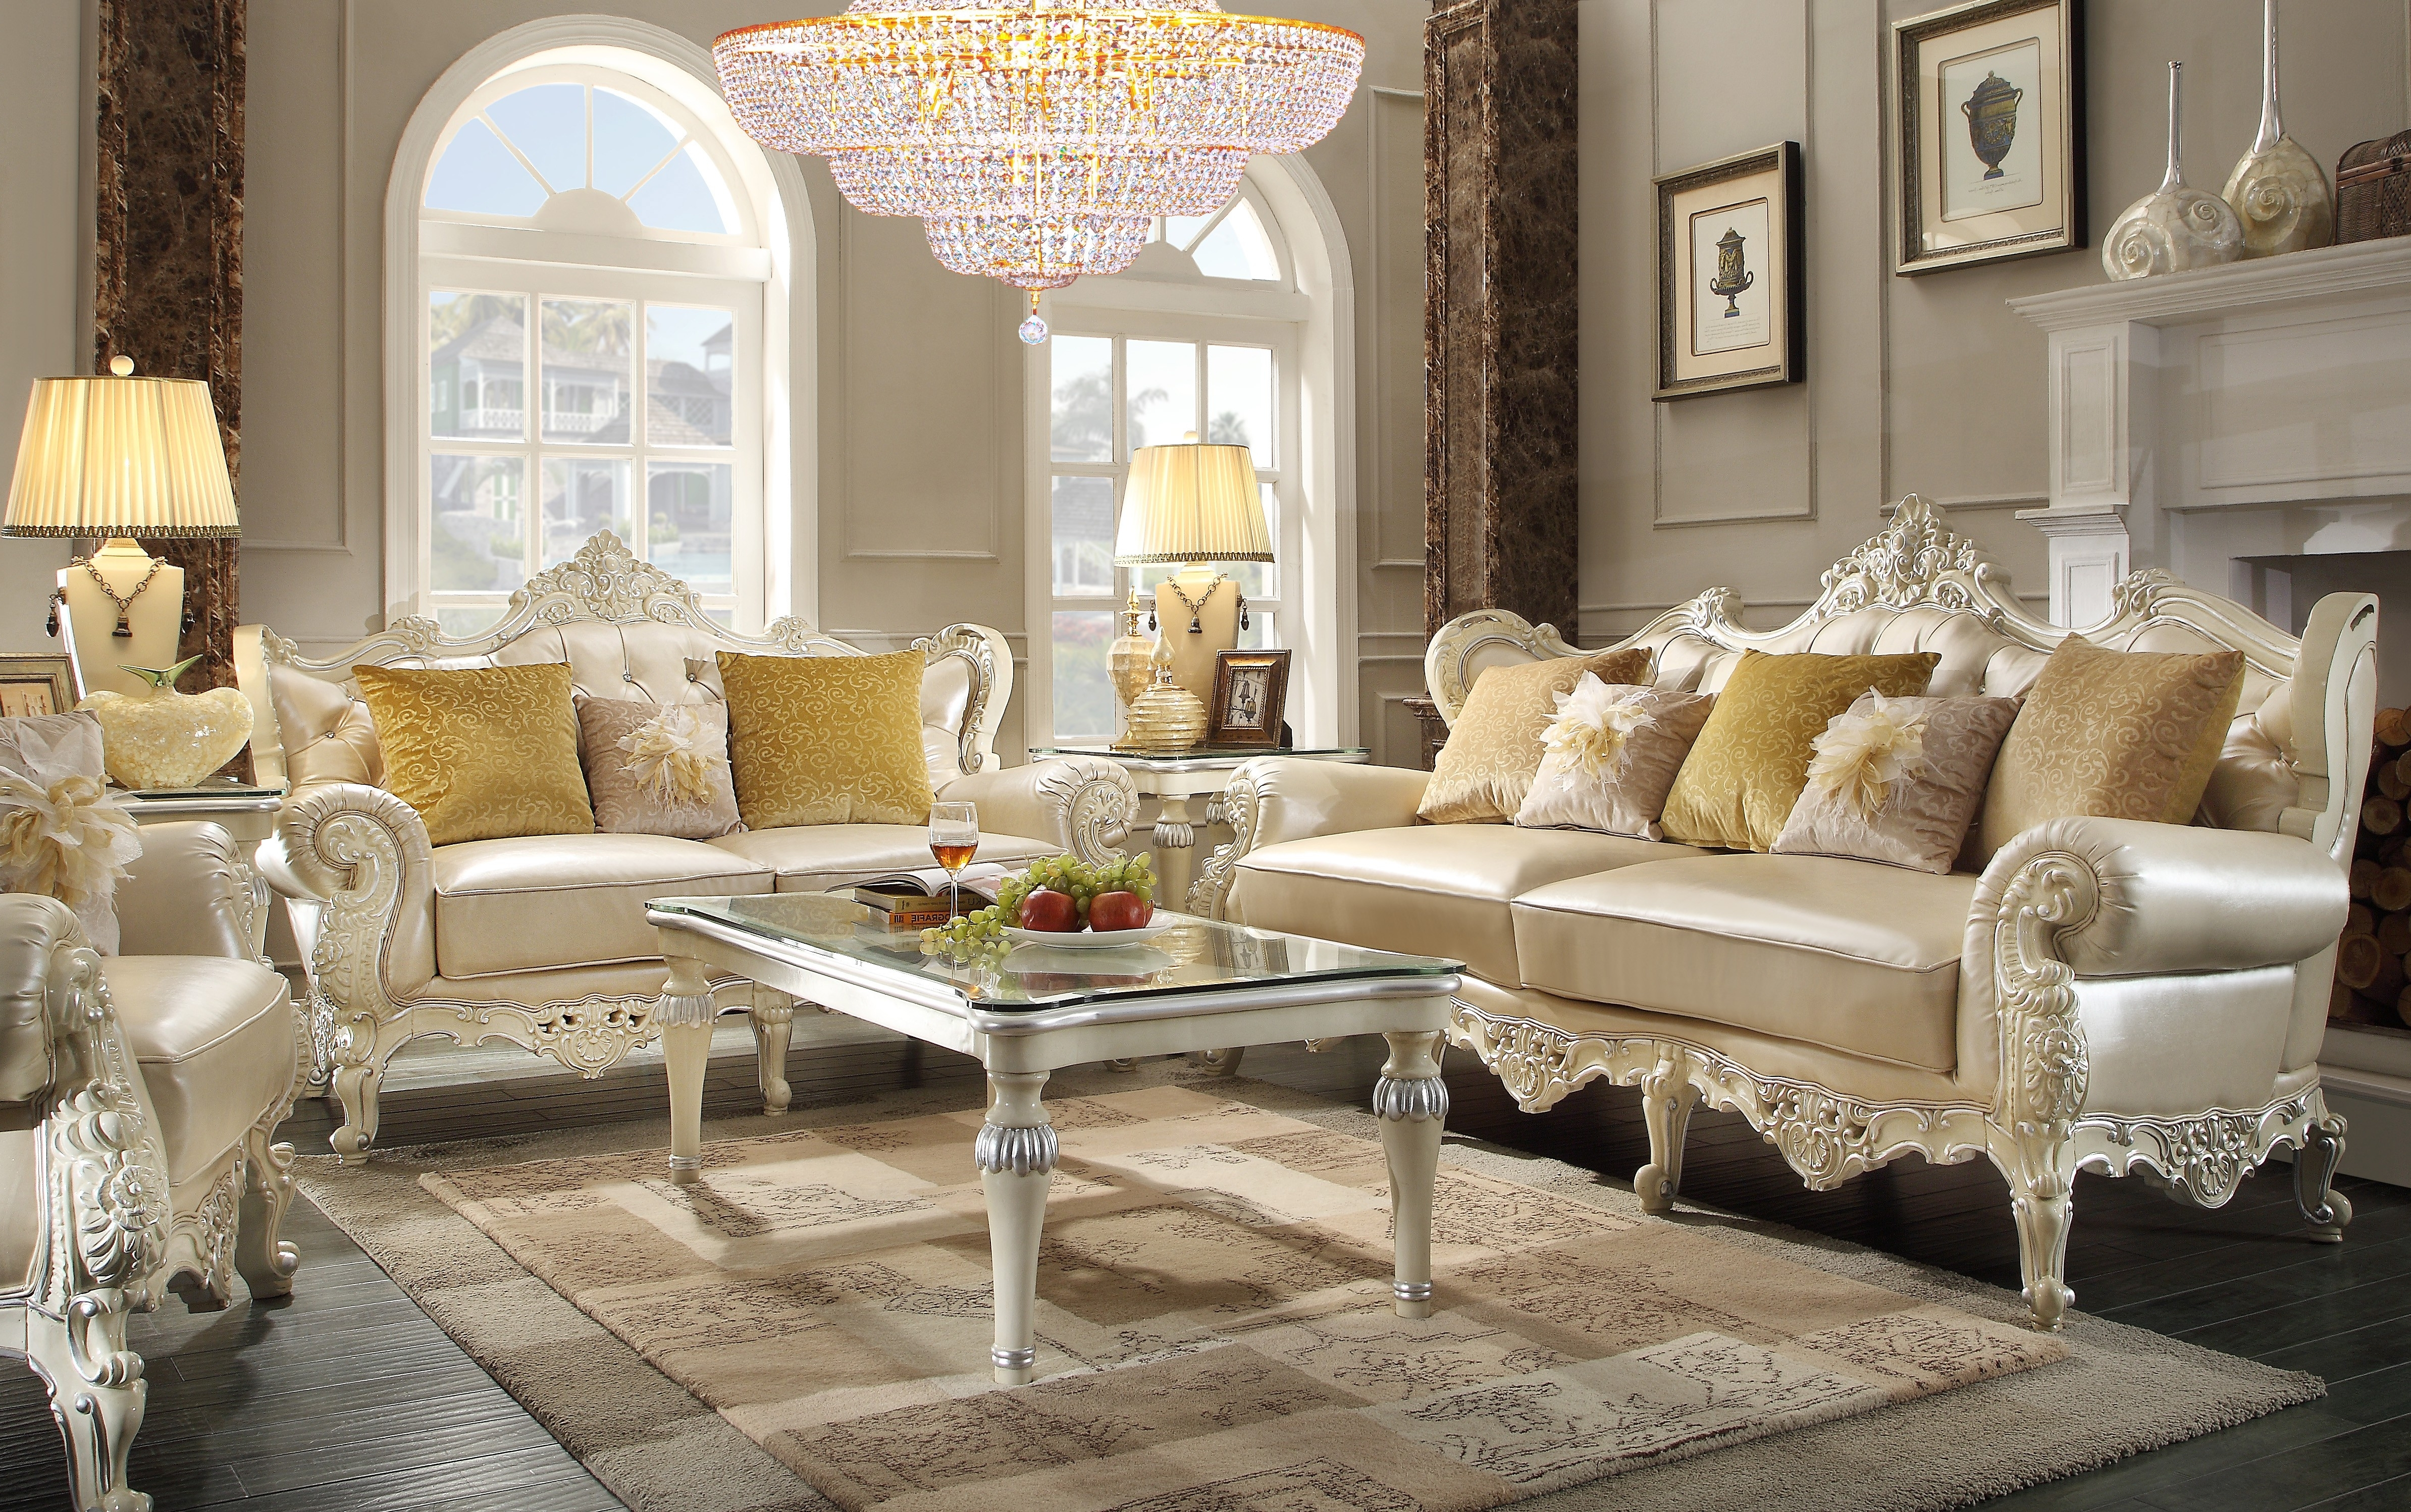 Traditional Sofas And Chairs In Widely Used Traditional Sofas Living Room Furniture (View 2 of 20)